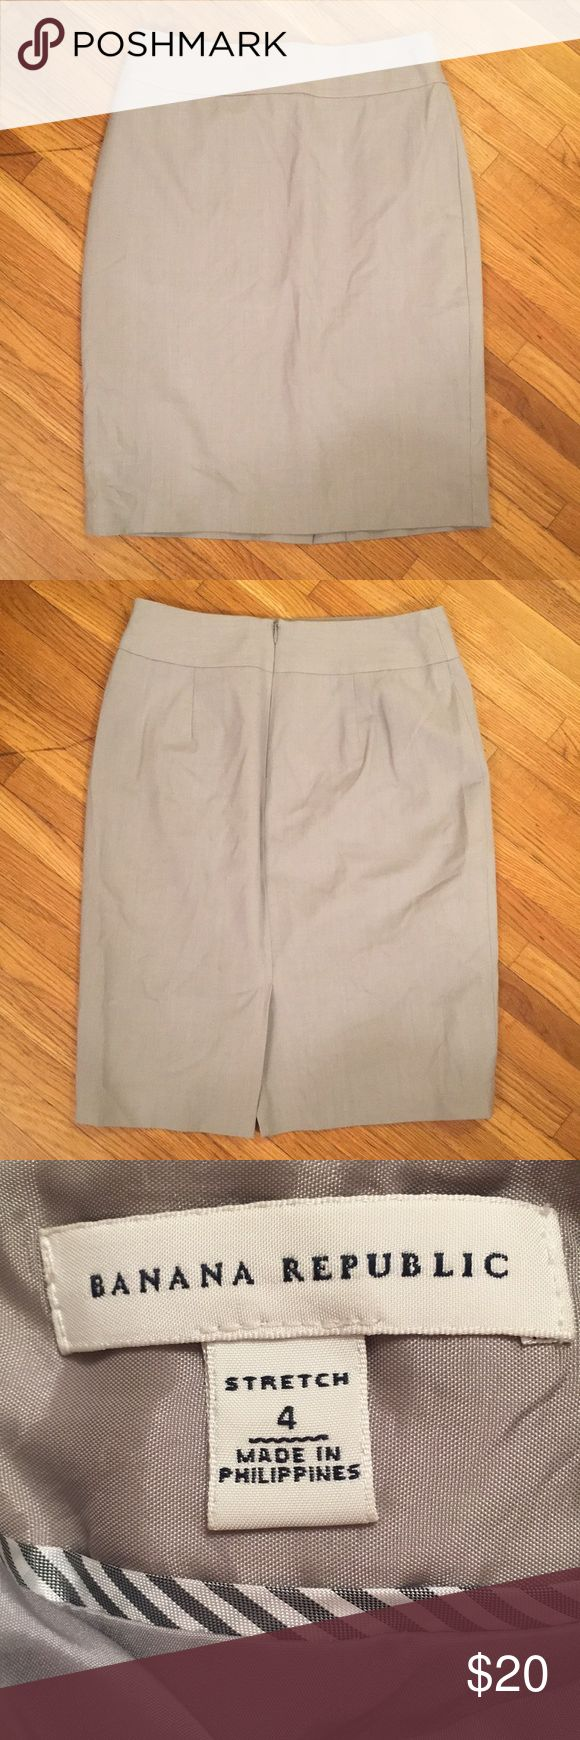 Banana Republic Gray Pencil Skirt -Item is in pre-owned condition. I do my best to heavily inspect and in doing so have not found any rips, stains, or piling to item.  -Smoke free, dog friendly home.  -Please specify measurements if you would like them.  -All items will ship within 2 business days- this excludes weekends and holidays. - No trades. No try ons.  Shipping prices firm. Banana Republic Skirts Pencil